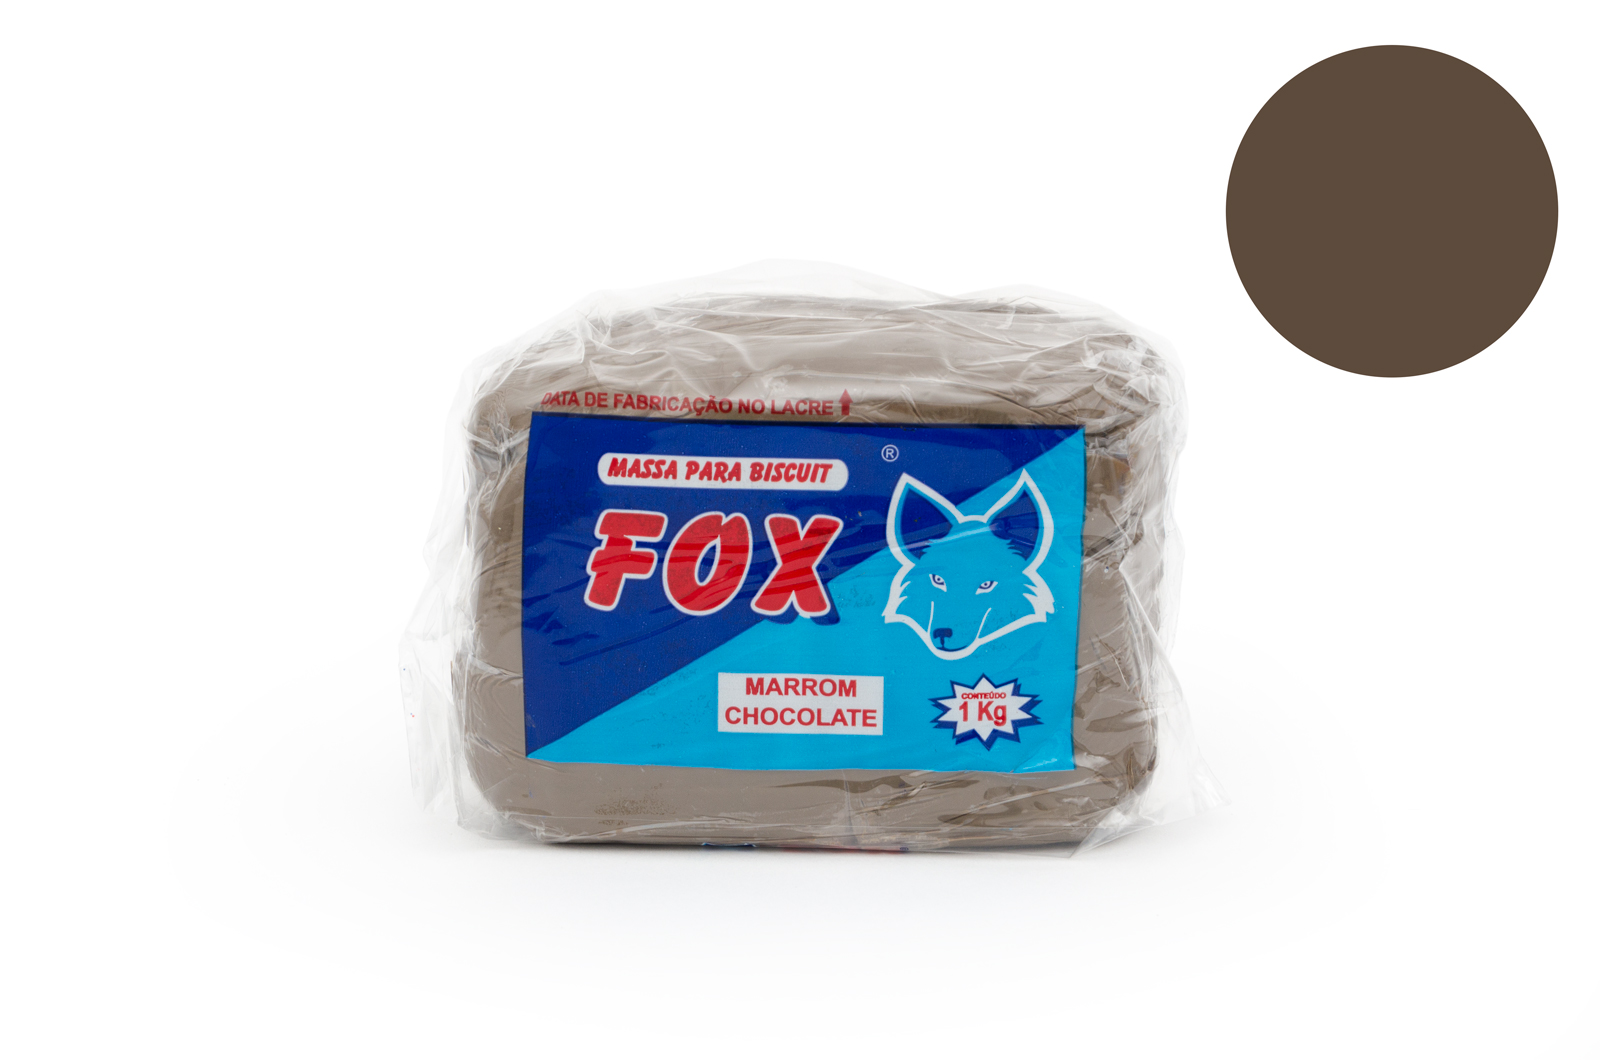 MASSA BISCUIT 1KG MARRON CHOCOLATE FOX